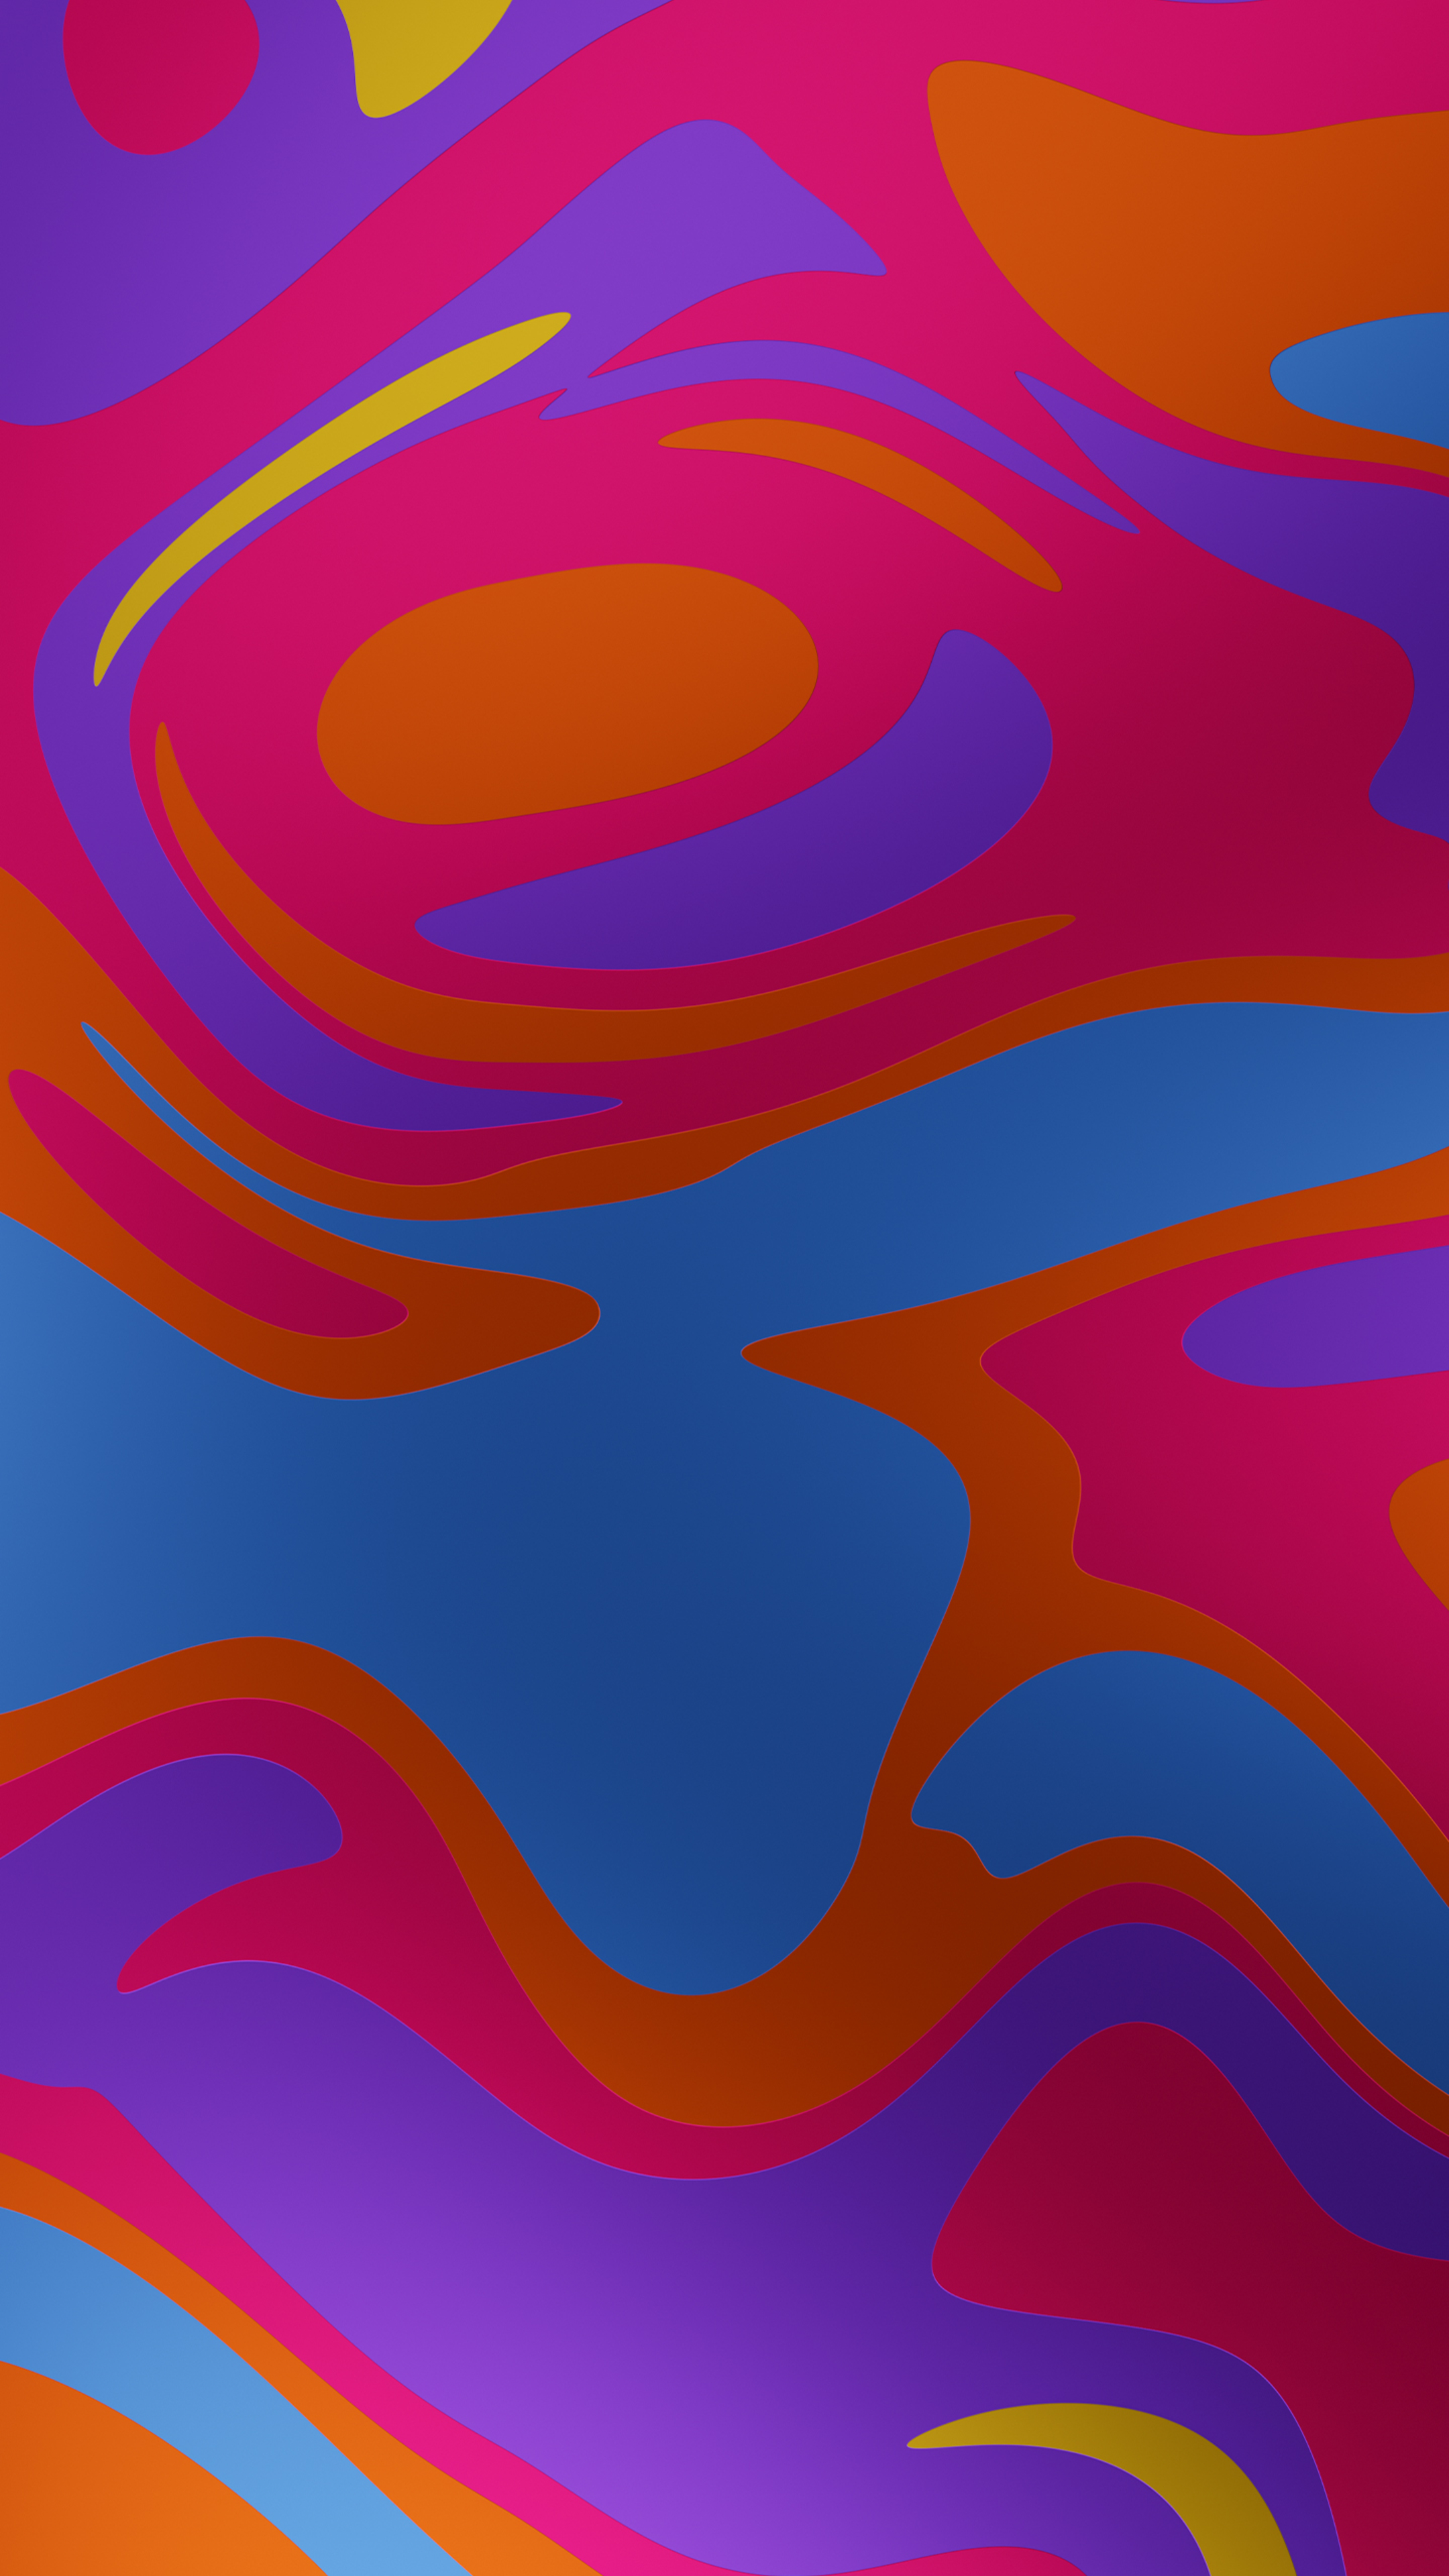 abstract-paint-polish-8k-r8.jpg